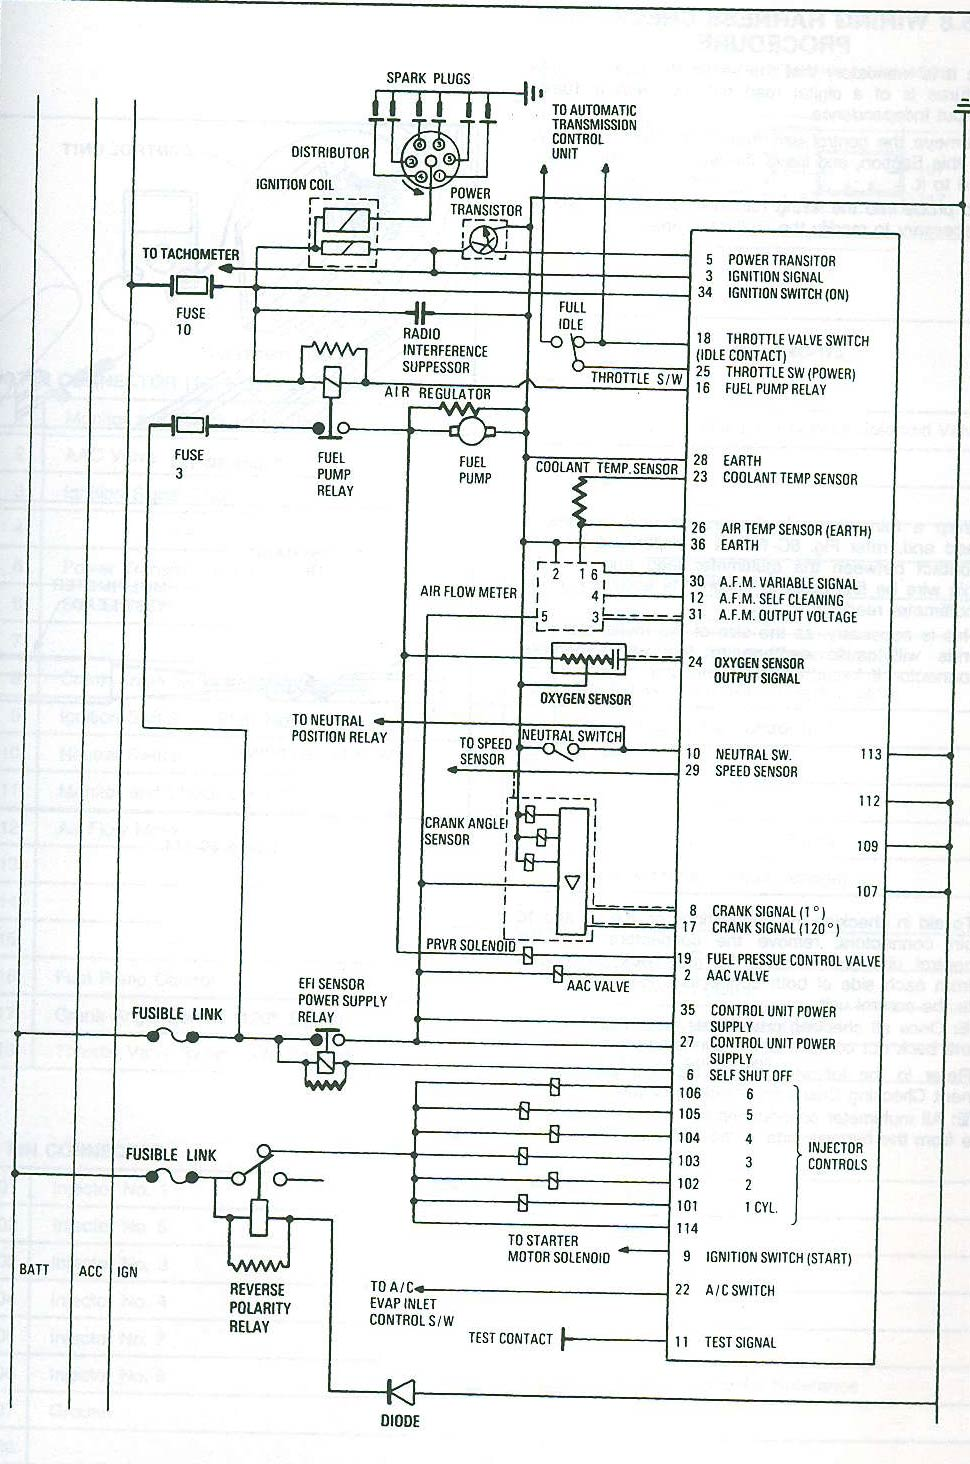 small resolution of nissan patrol wiring diagram gq wiring diagram sort nissan patrol headlight wiring diagram nissan patrol wiring diagram